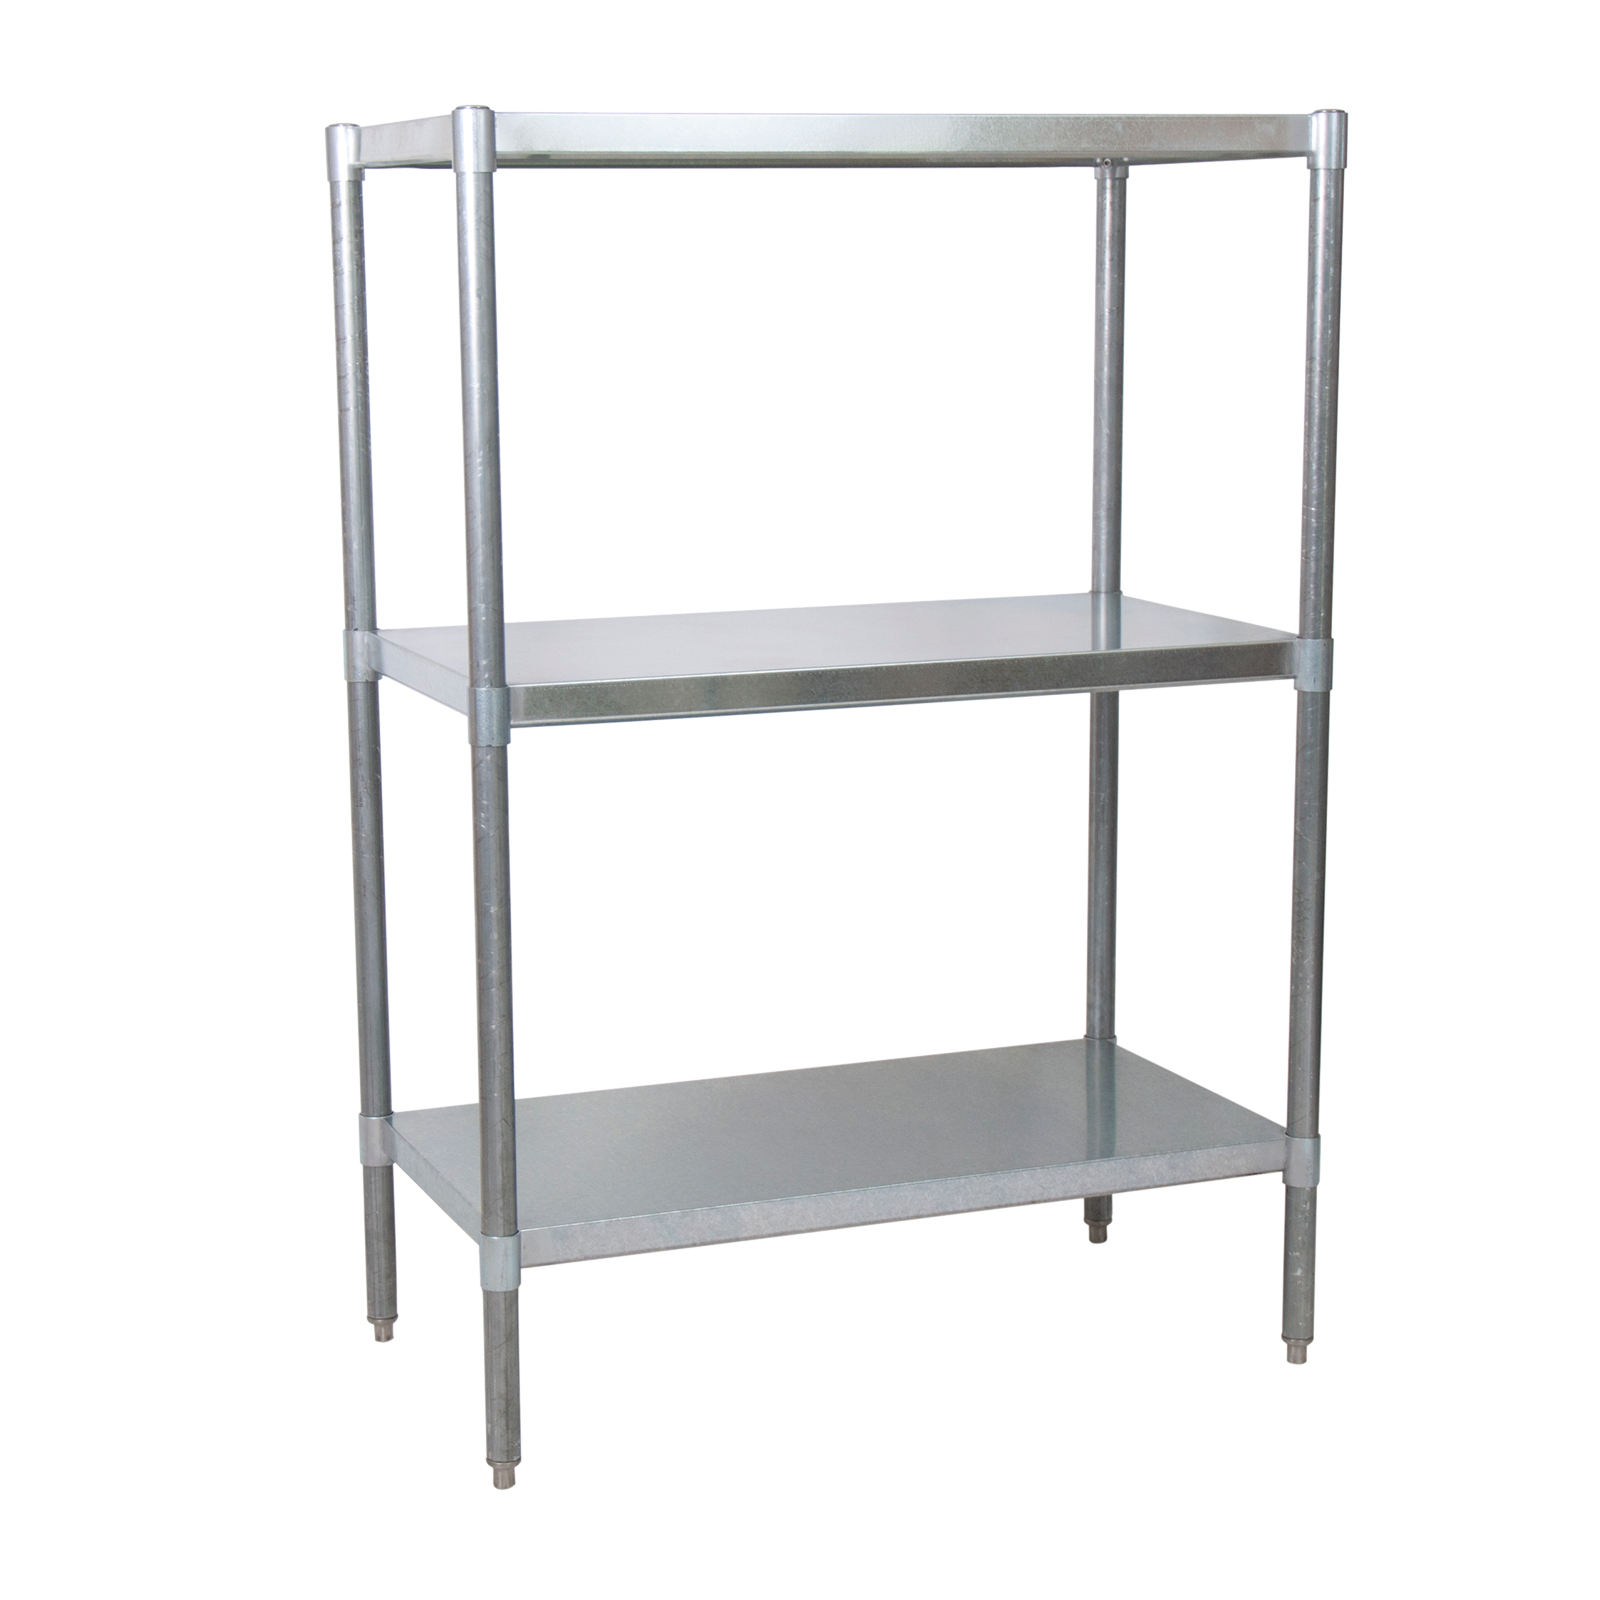 BK Resources SSU5-3124 shelving unit, solid flat